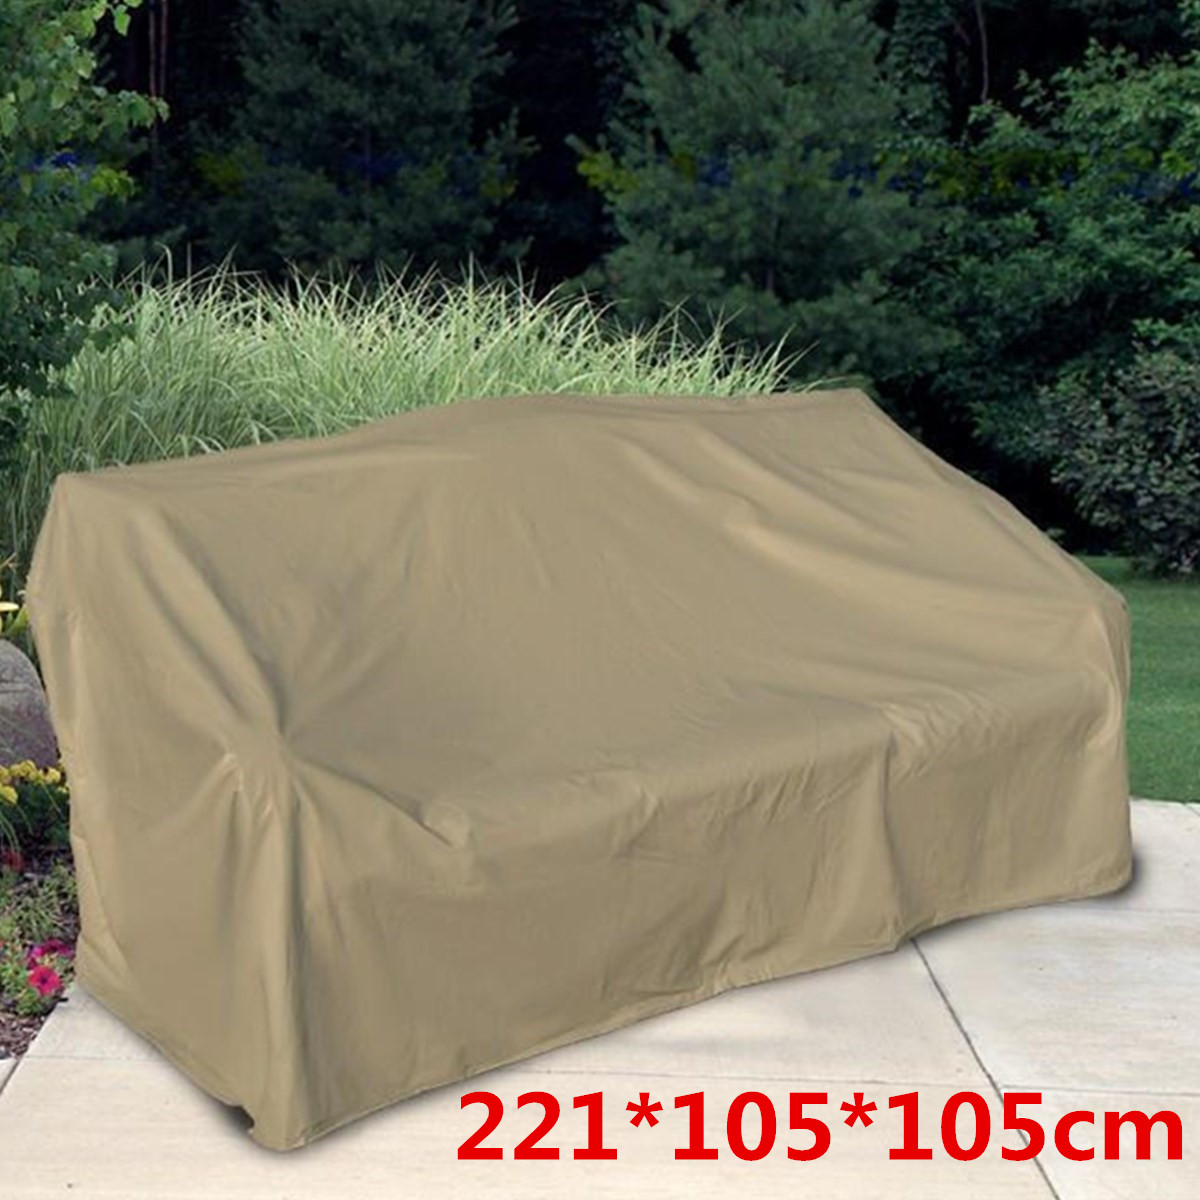 Waterproof Outdoor Patio Garden Furniture Covers Rain Snow Chair Covers For Sofa Table Chair Dust Proof Cover Protection Beige